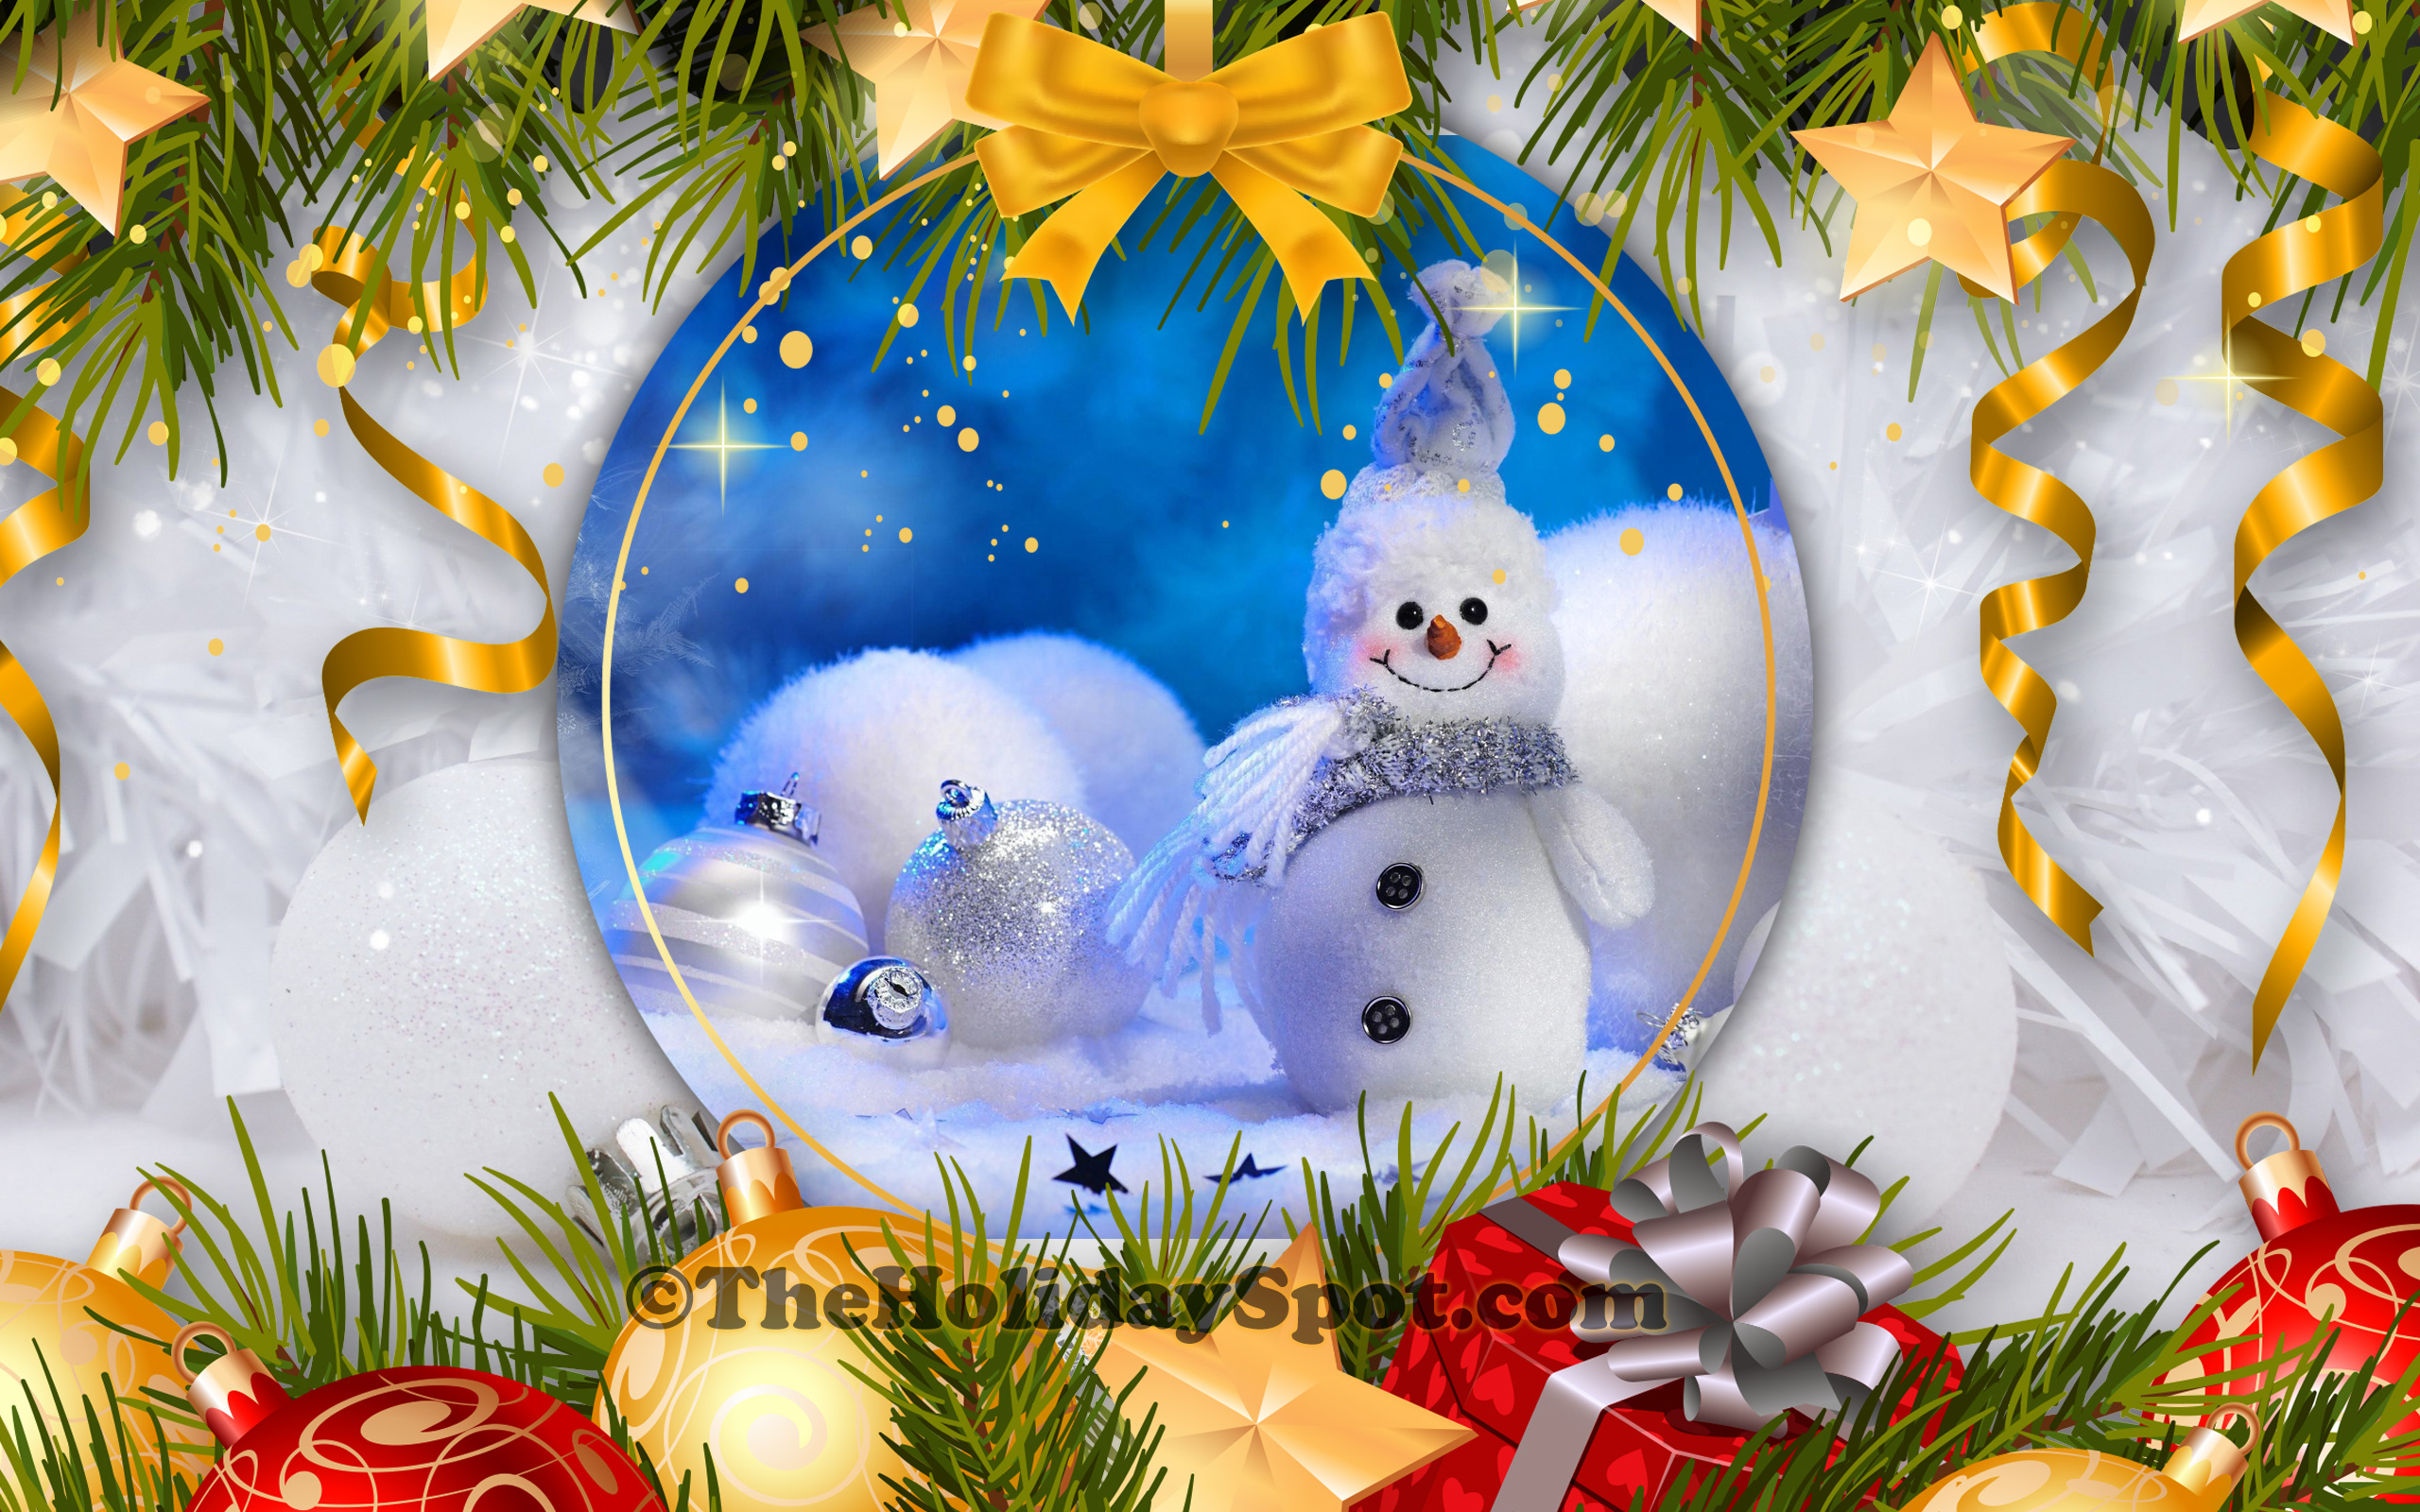 Free Christmas Wallpaper For Computer Screen 2020 90+ Christmas HD 1080p Wallpapers | Download Christmas HD